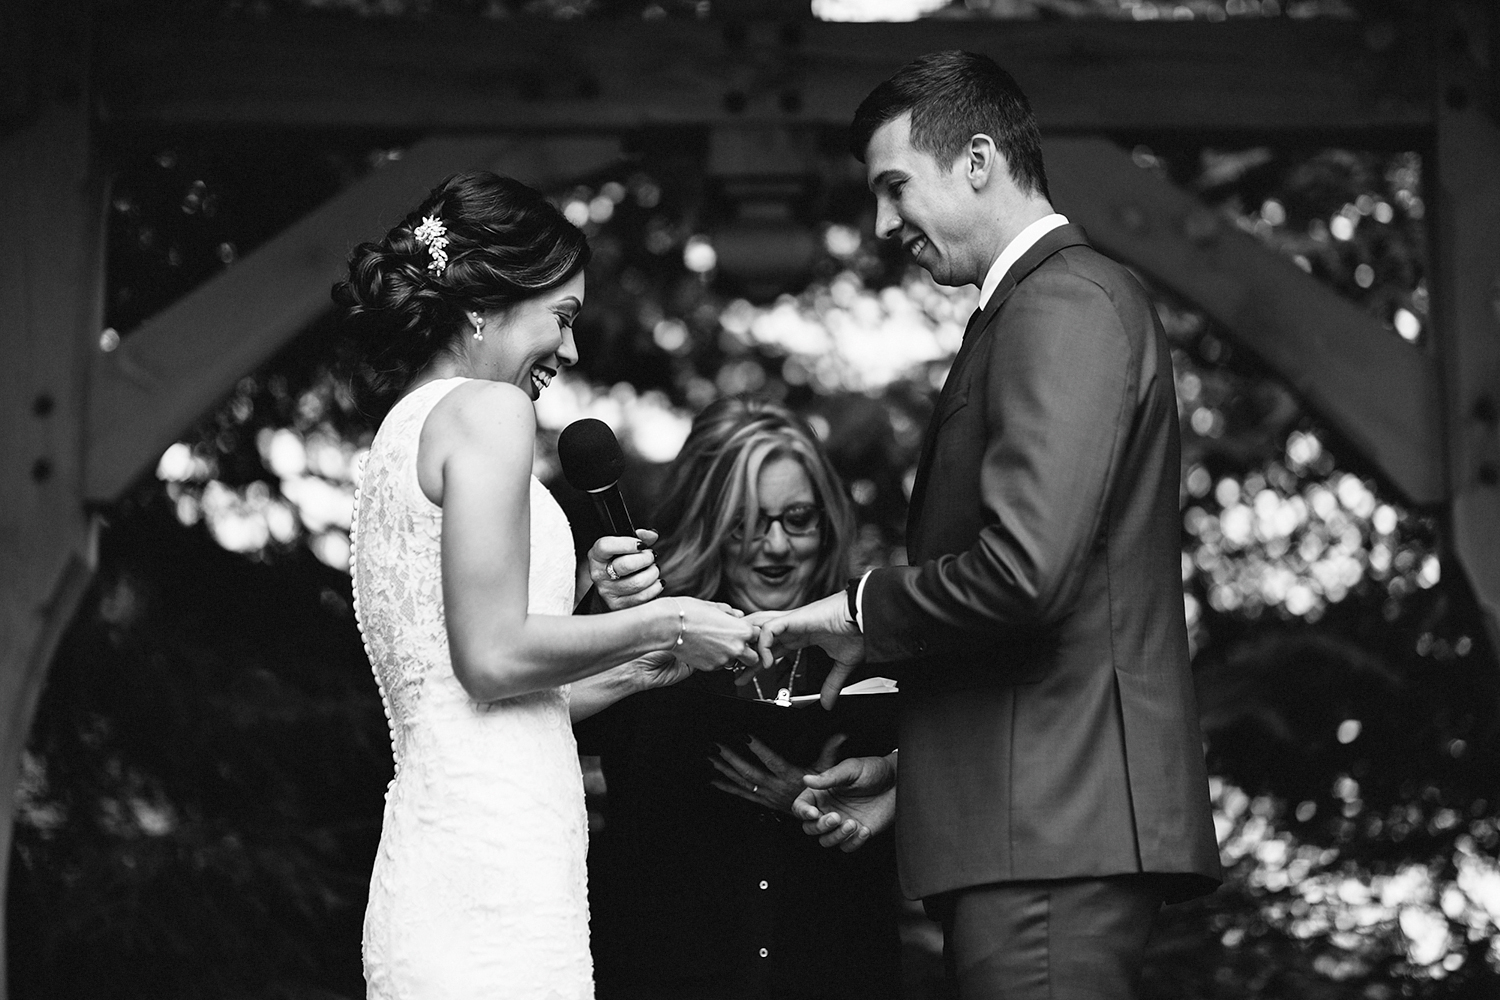 ceremony-rustic-bride-and-groom-exchanging-rings-cinematic-toronto's-best-wedding-photographers-candid-documentary-style-photography-london-ontario-winery-wedding-inspiration.jpg